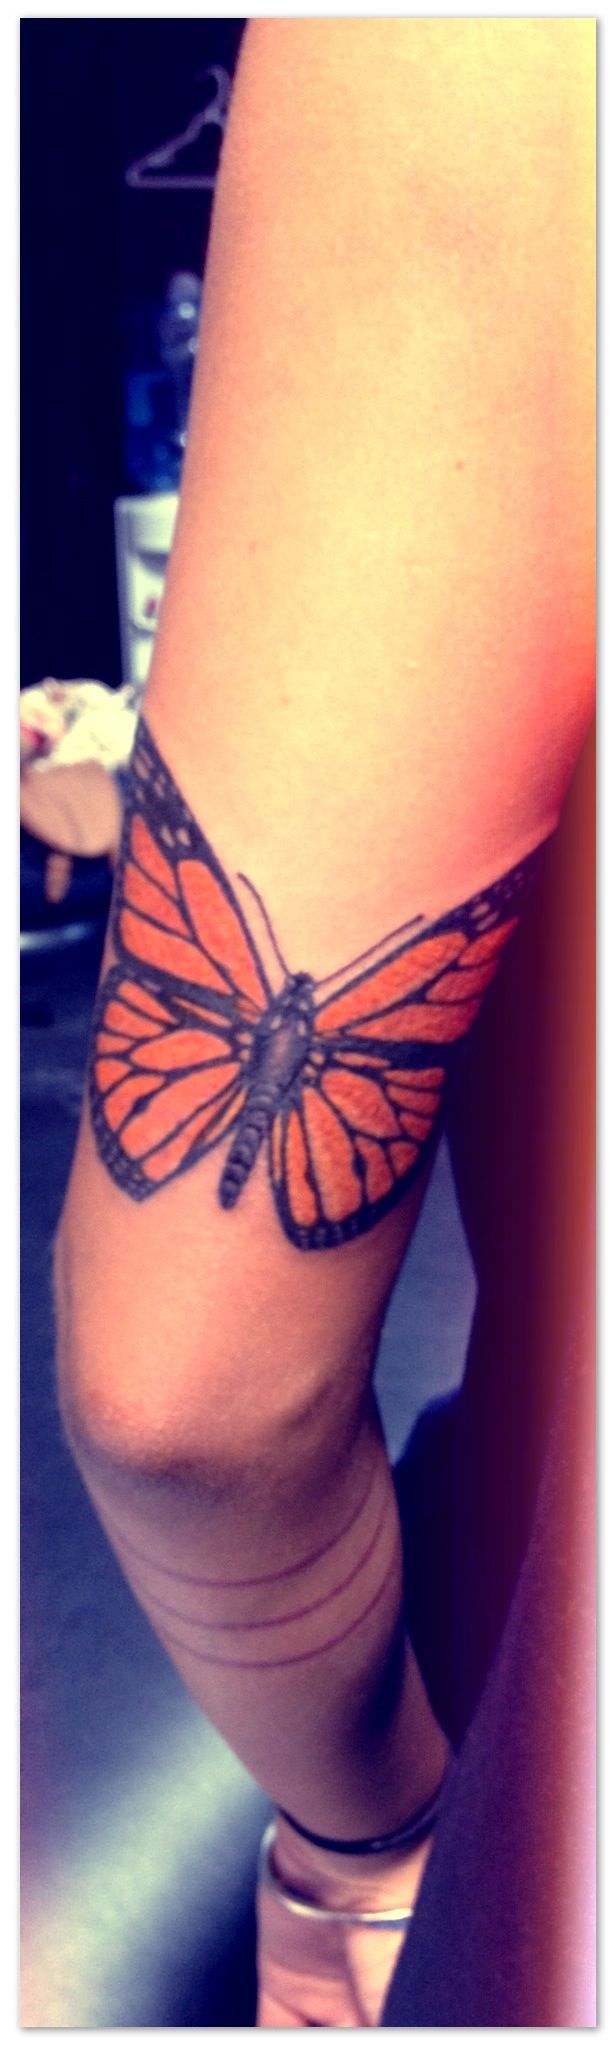 My new monarch tattoo